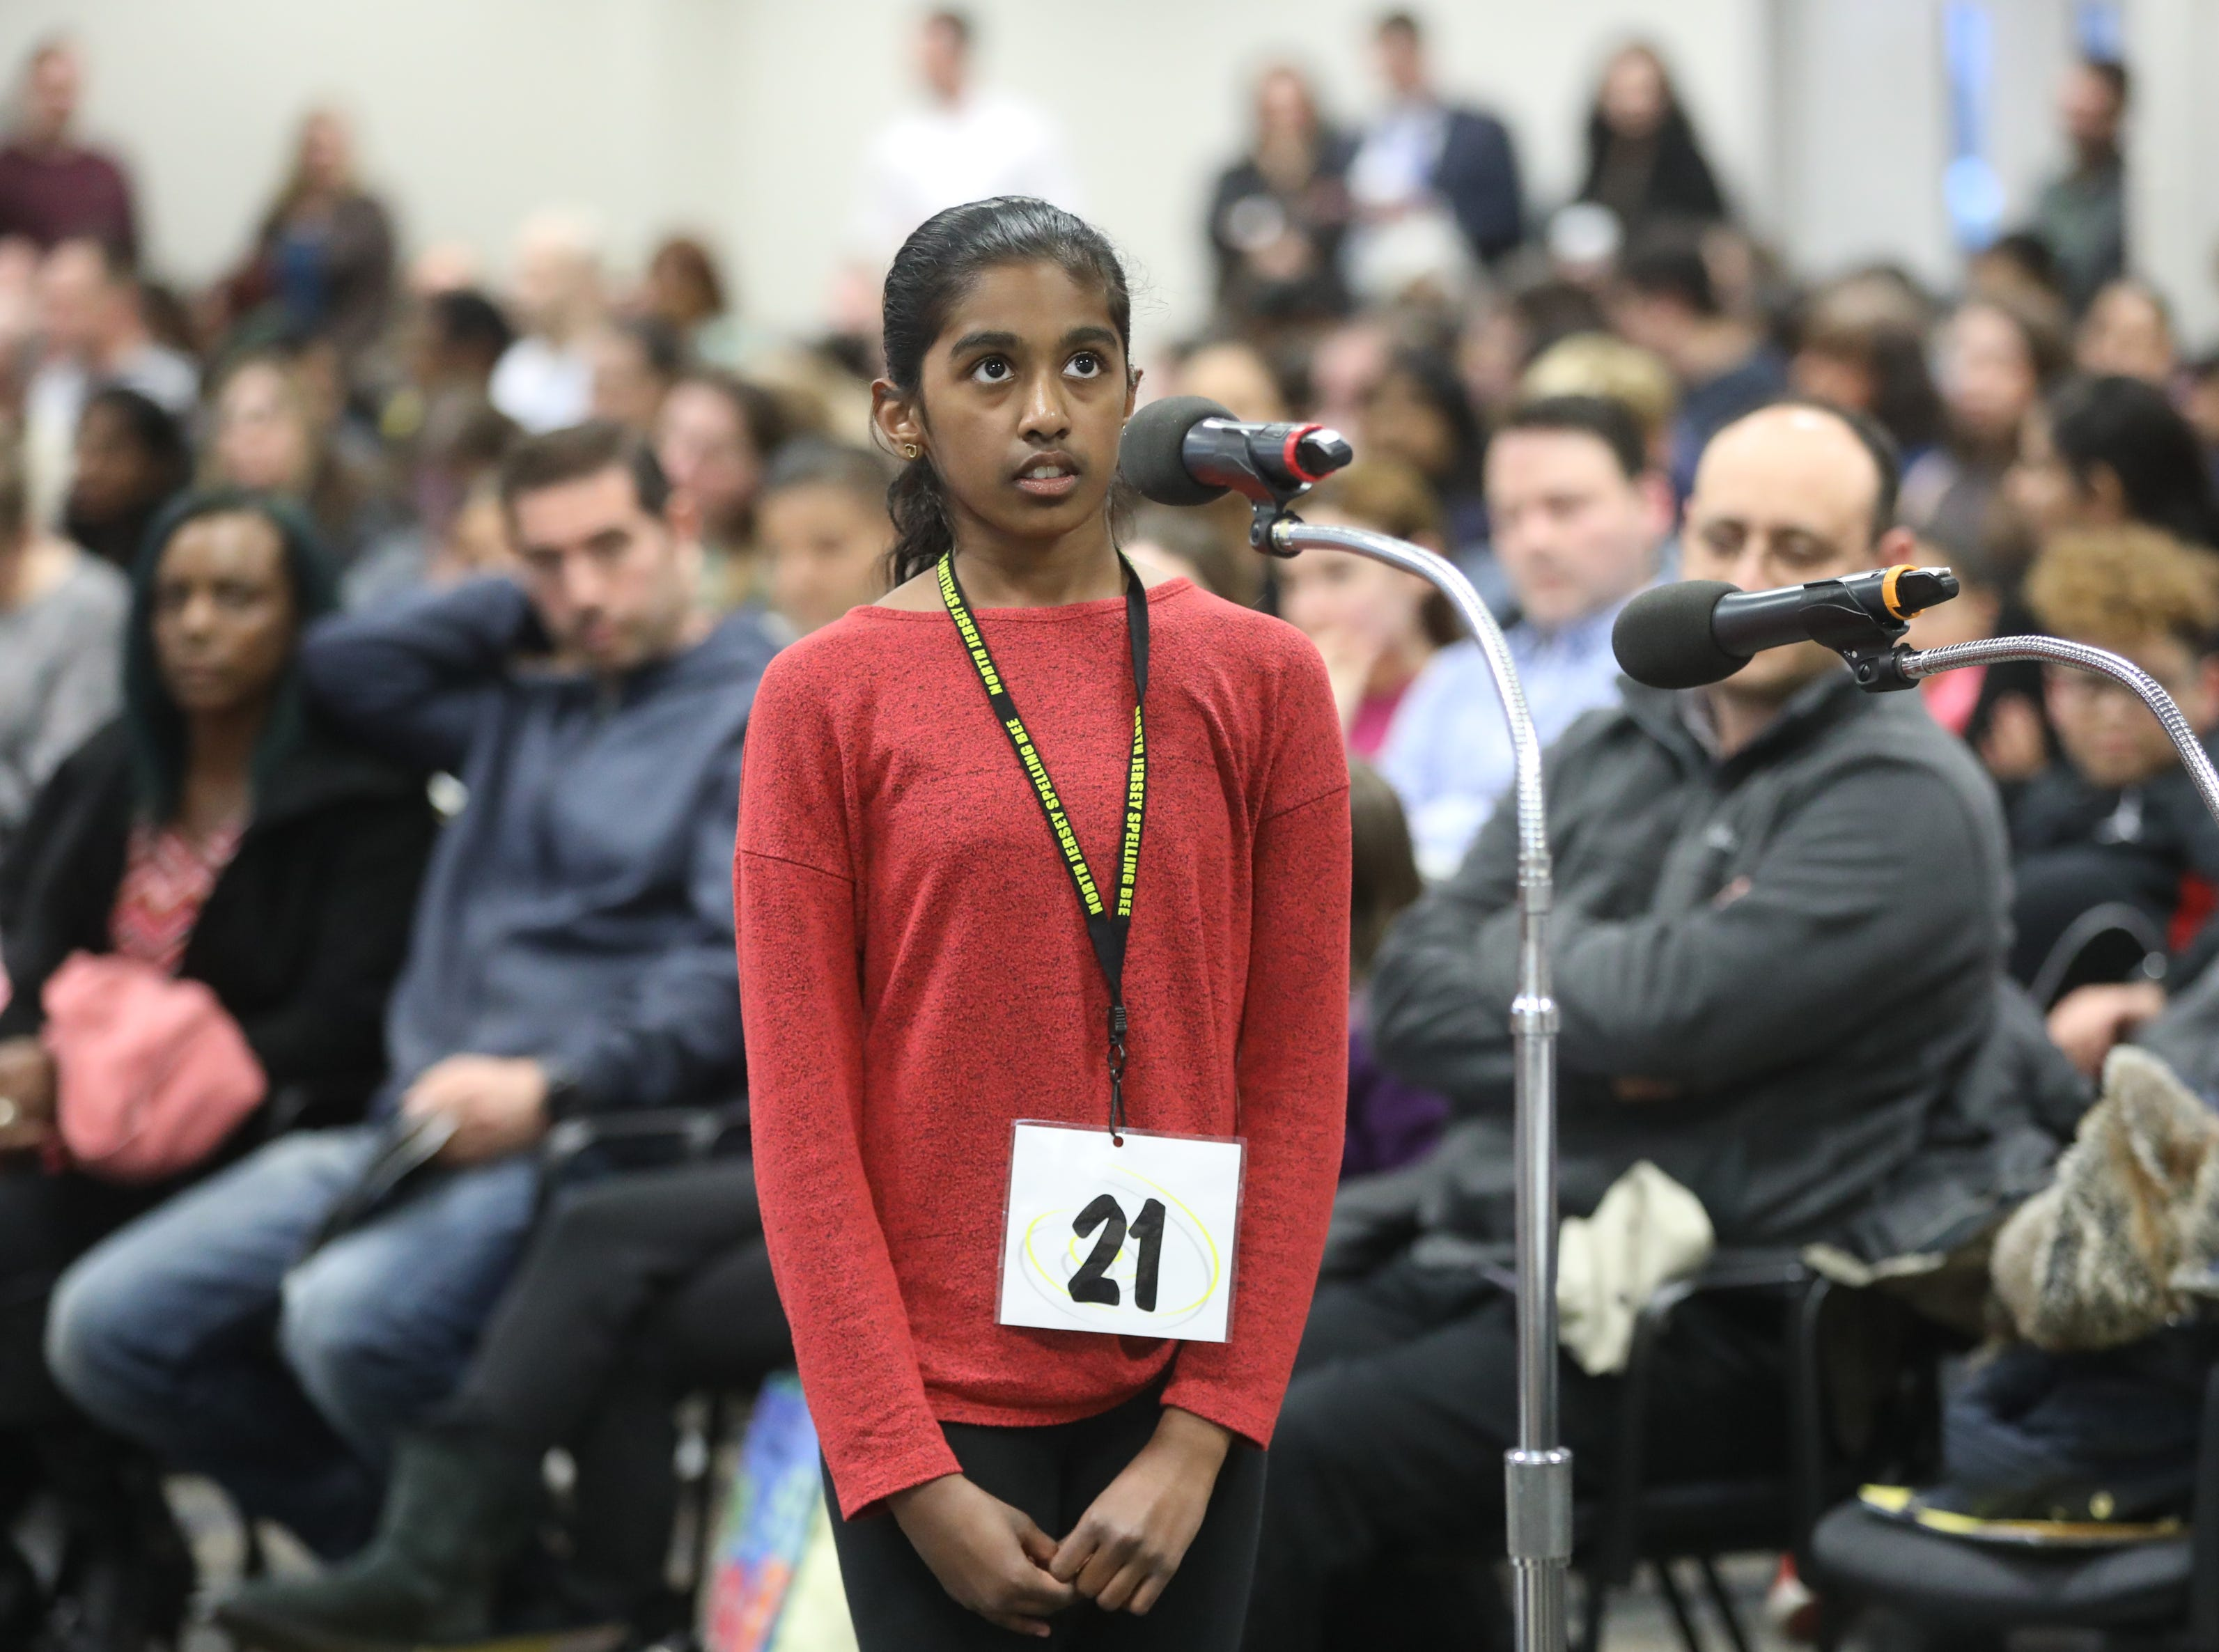 Riya Rajesh, of Upper Saddle River, competes in the first round of the 2019 North Jersey Spelling Bee, in Paramus. Thursday, March 14, 2019